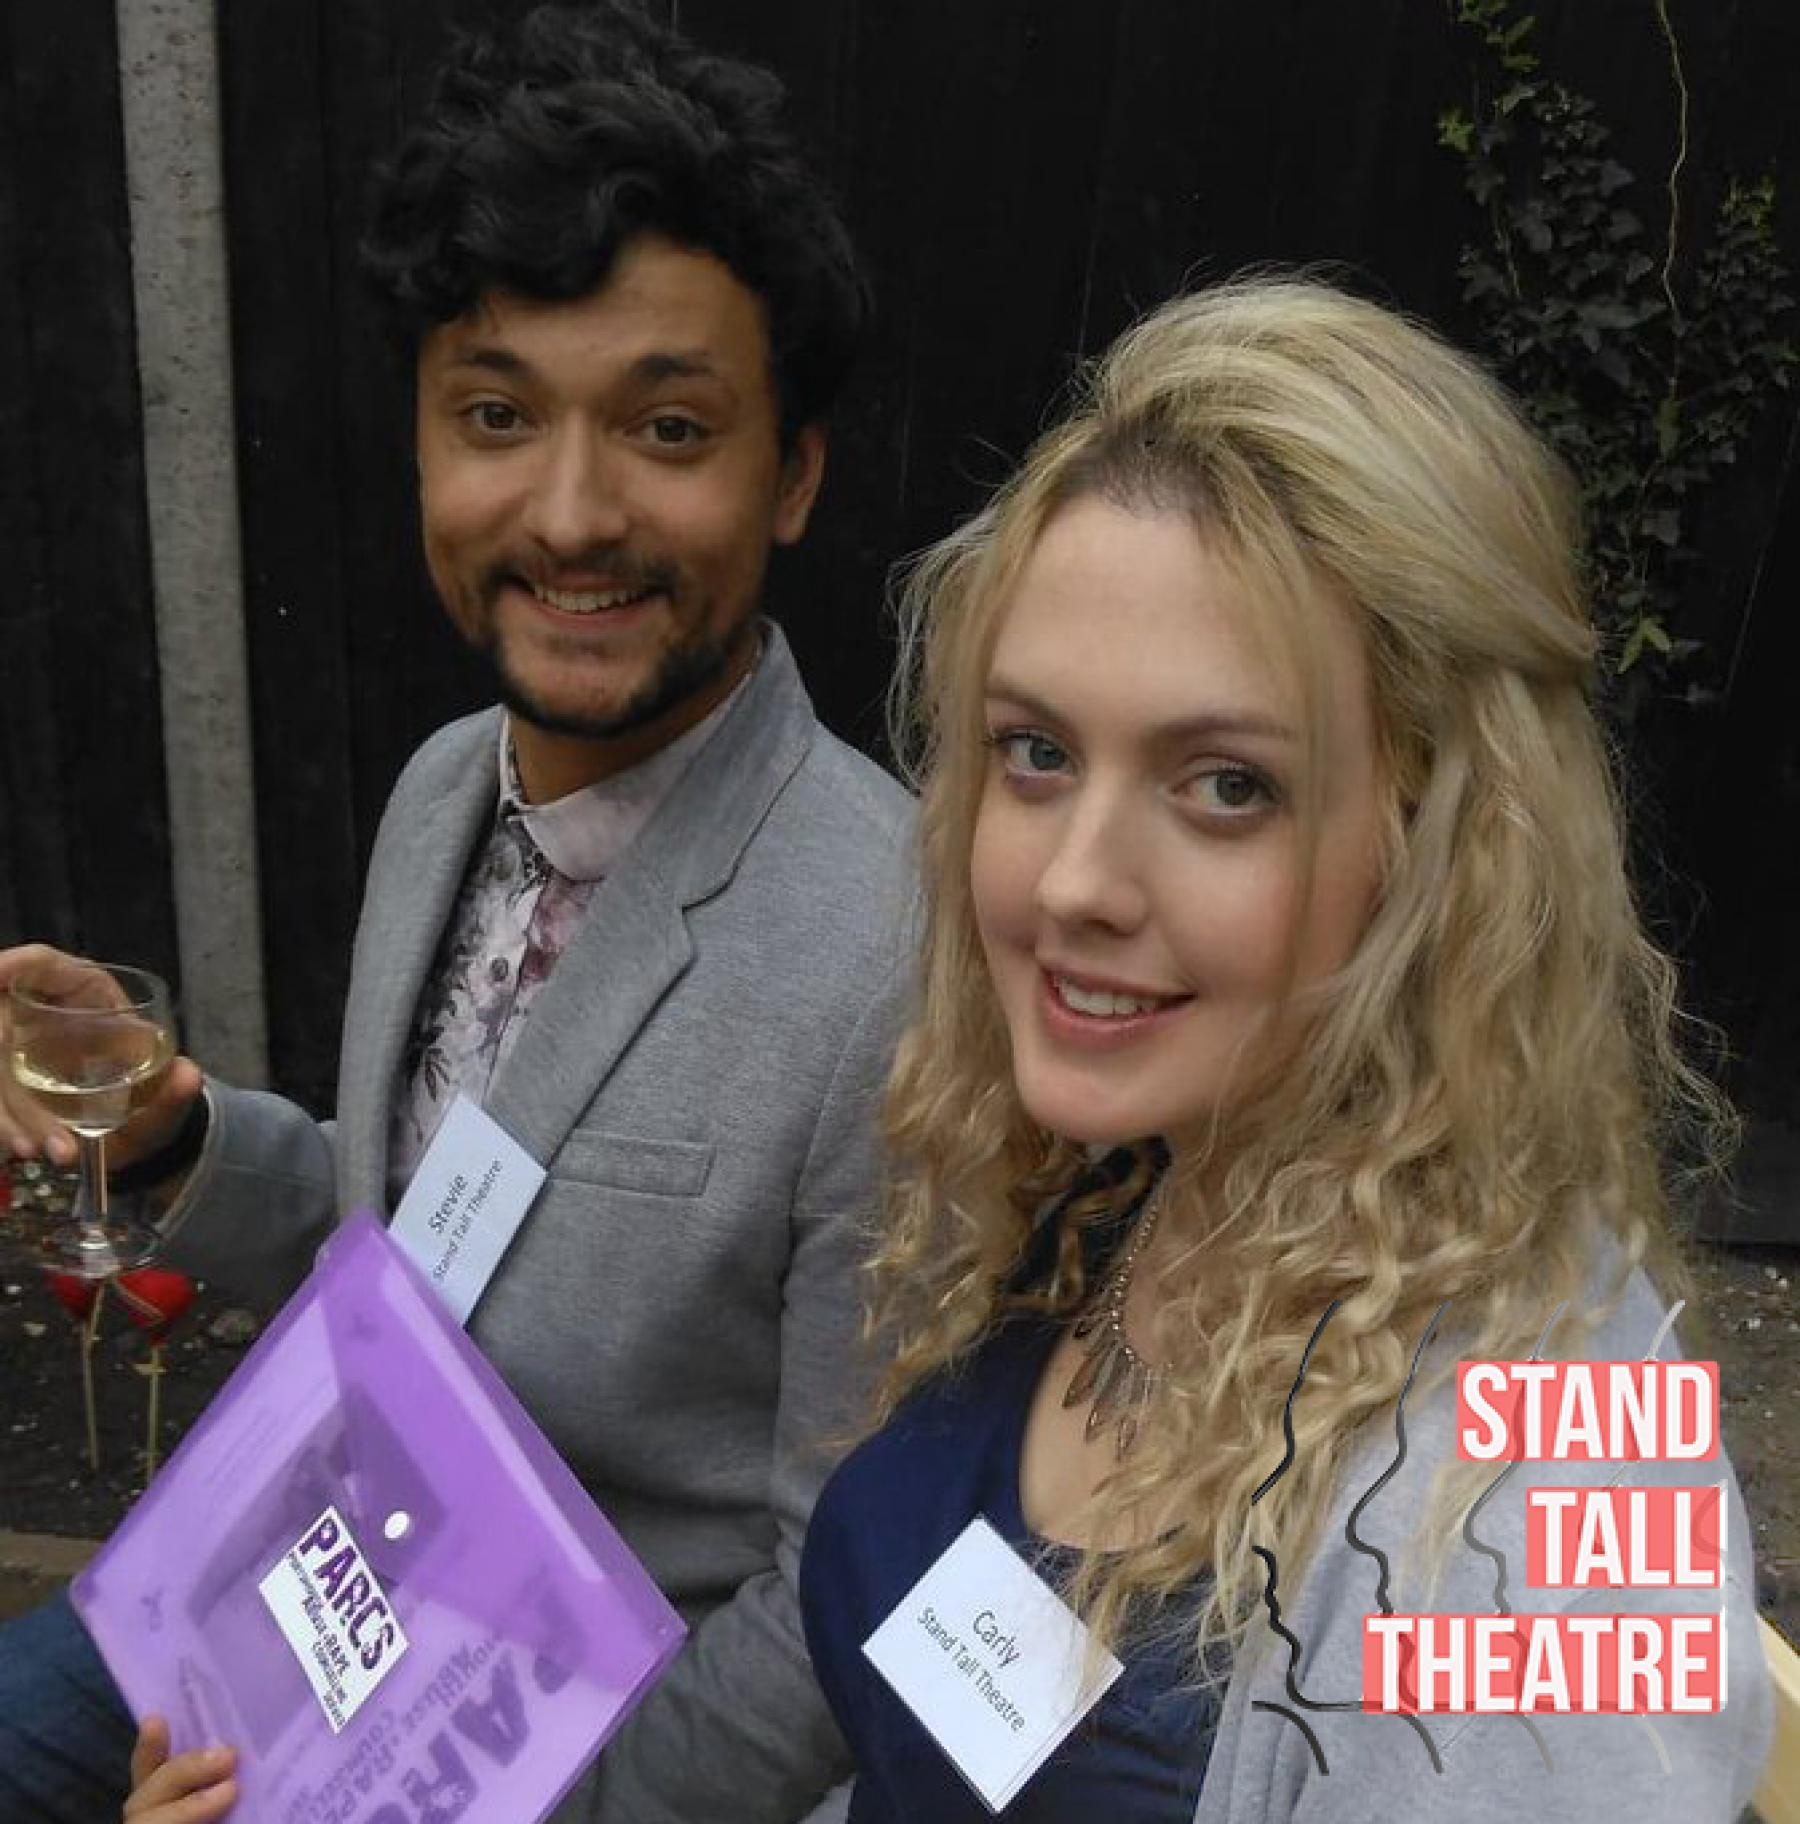 Stand Tall Theatre Company are teaching digital skills as part of PONToon